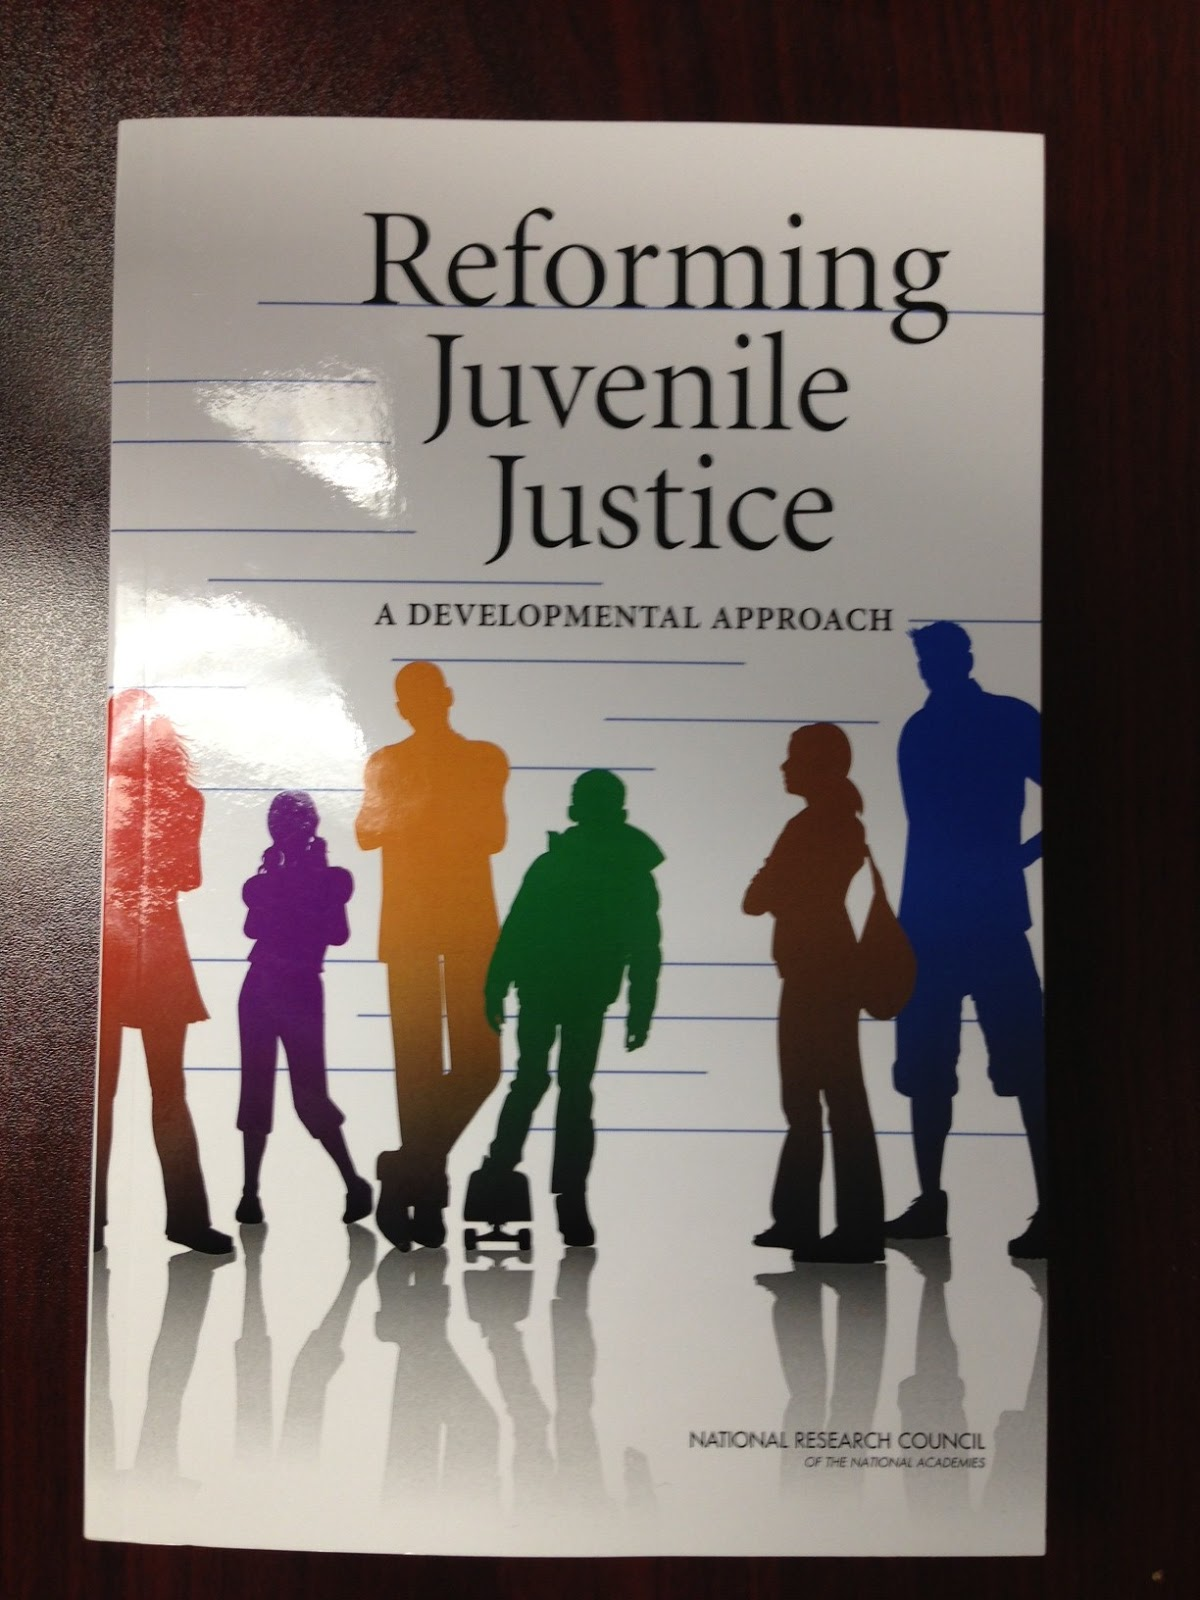 an overview of the issues regarding juvenile offenders and juvenile justice Volume iv • number 2 juvenile justice  ing authorities on juvenile justice and related youth issues these ex-  juvenile offenders has been improved juvenile.